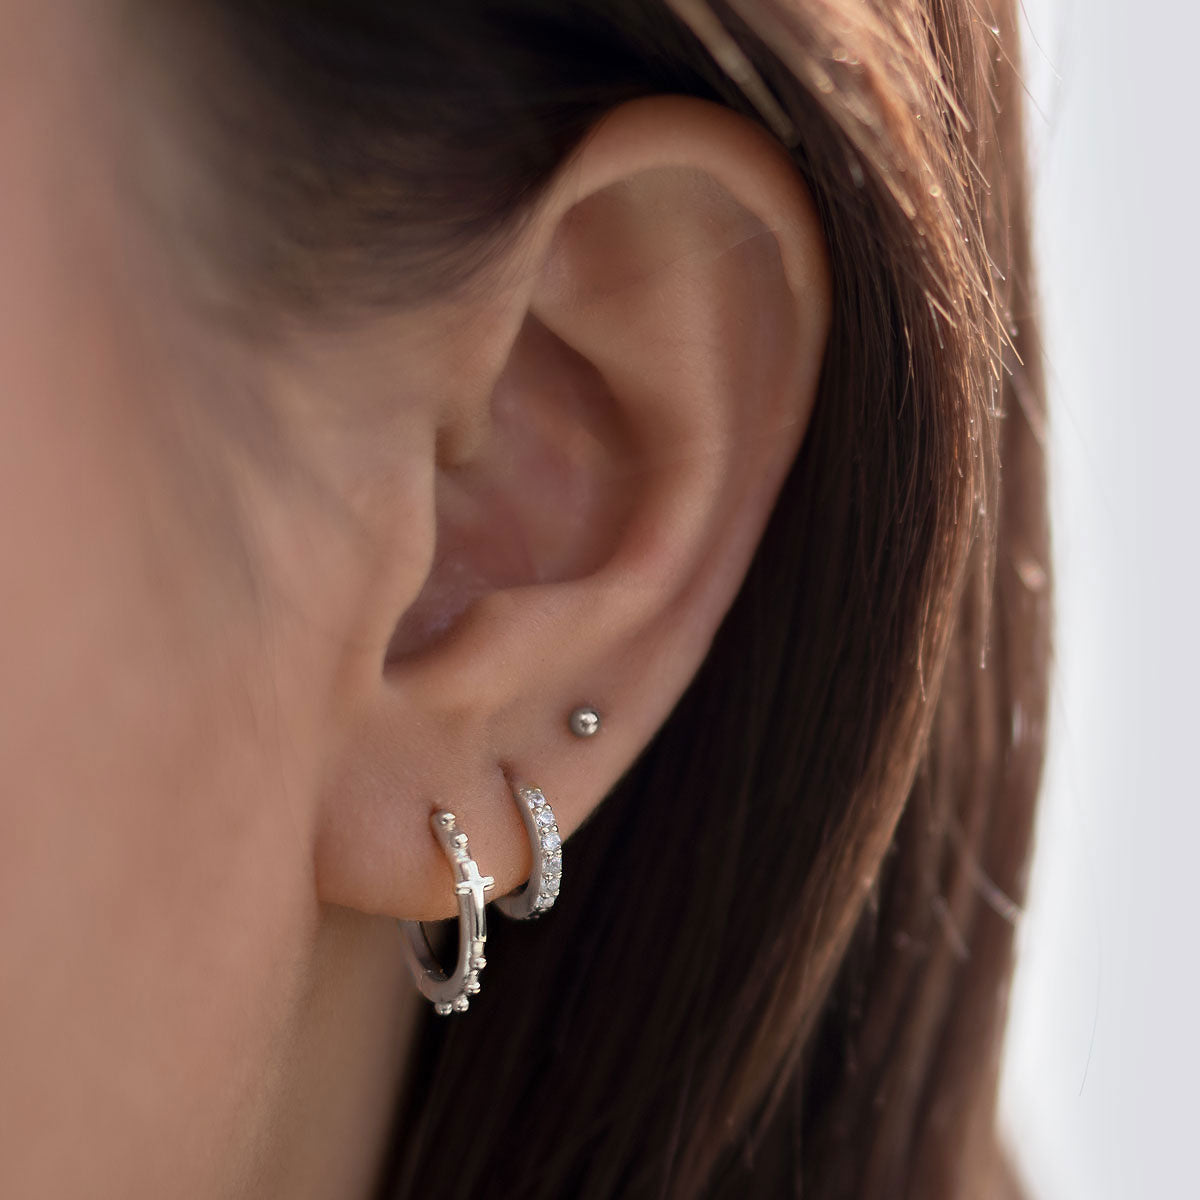 Ear Stack made up of Silver Cross Huggies, Pave Huggie Earrings and Tiny sphere stud earring